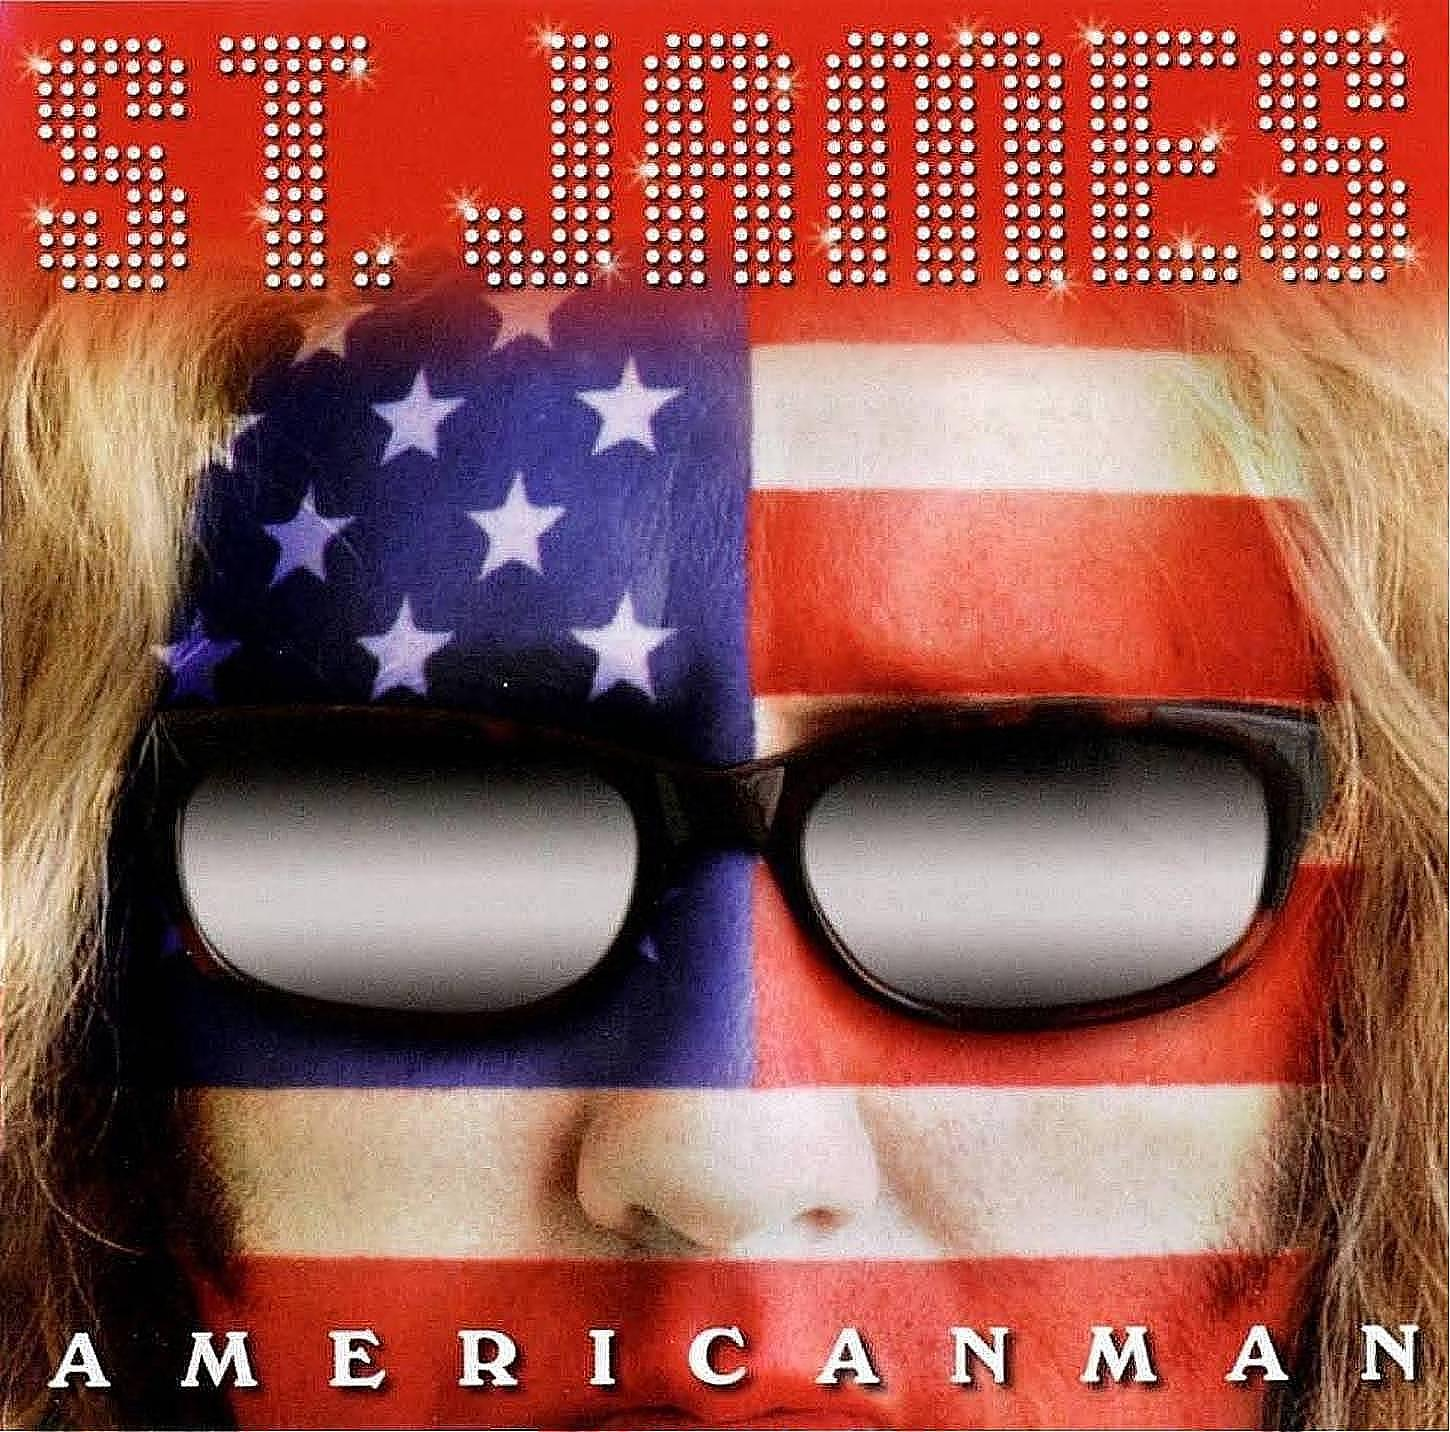 2019 St Dj Songs Dowode 4 33 Mb: American Man (2001, Hard Rock)